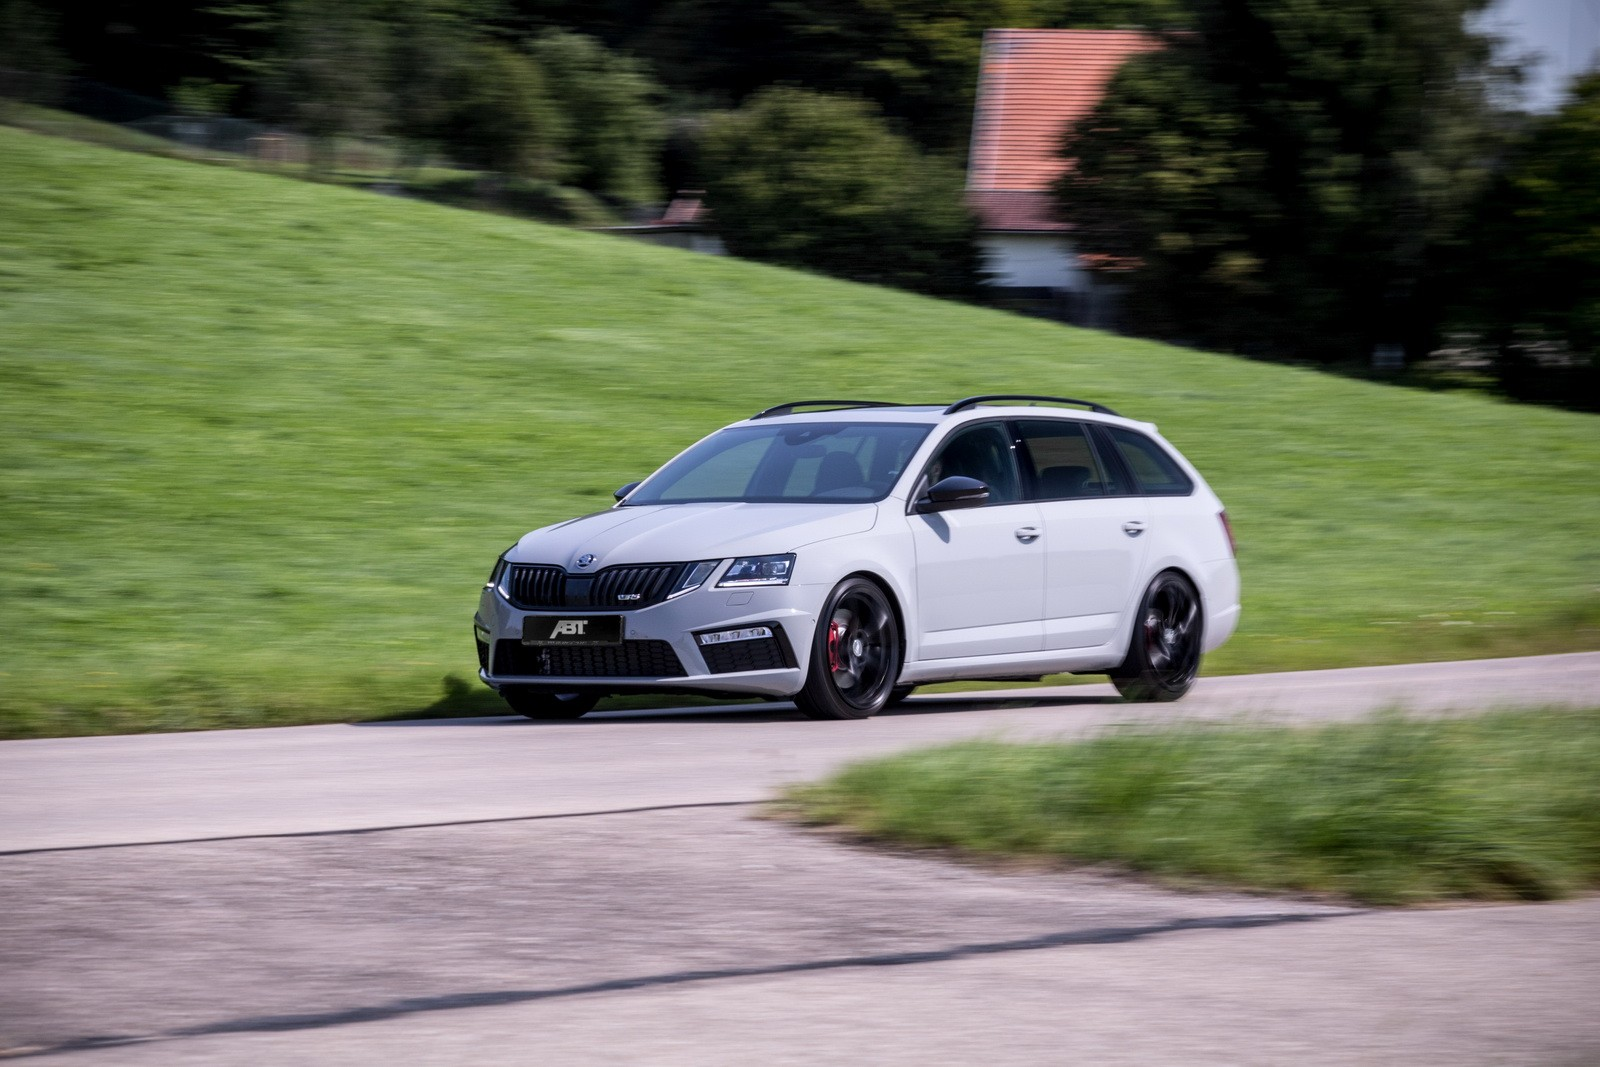 updated skoda octavia rs makes 315 hp thanks to abt tuning autoevolution. Black Bedroom Furniture Sets. Home Design Ideas